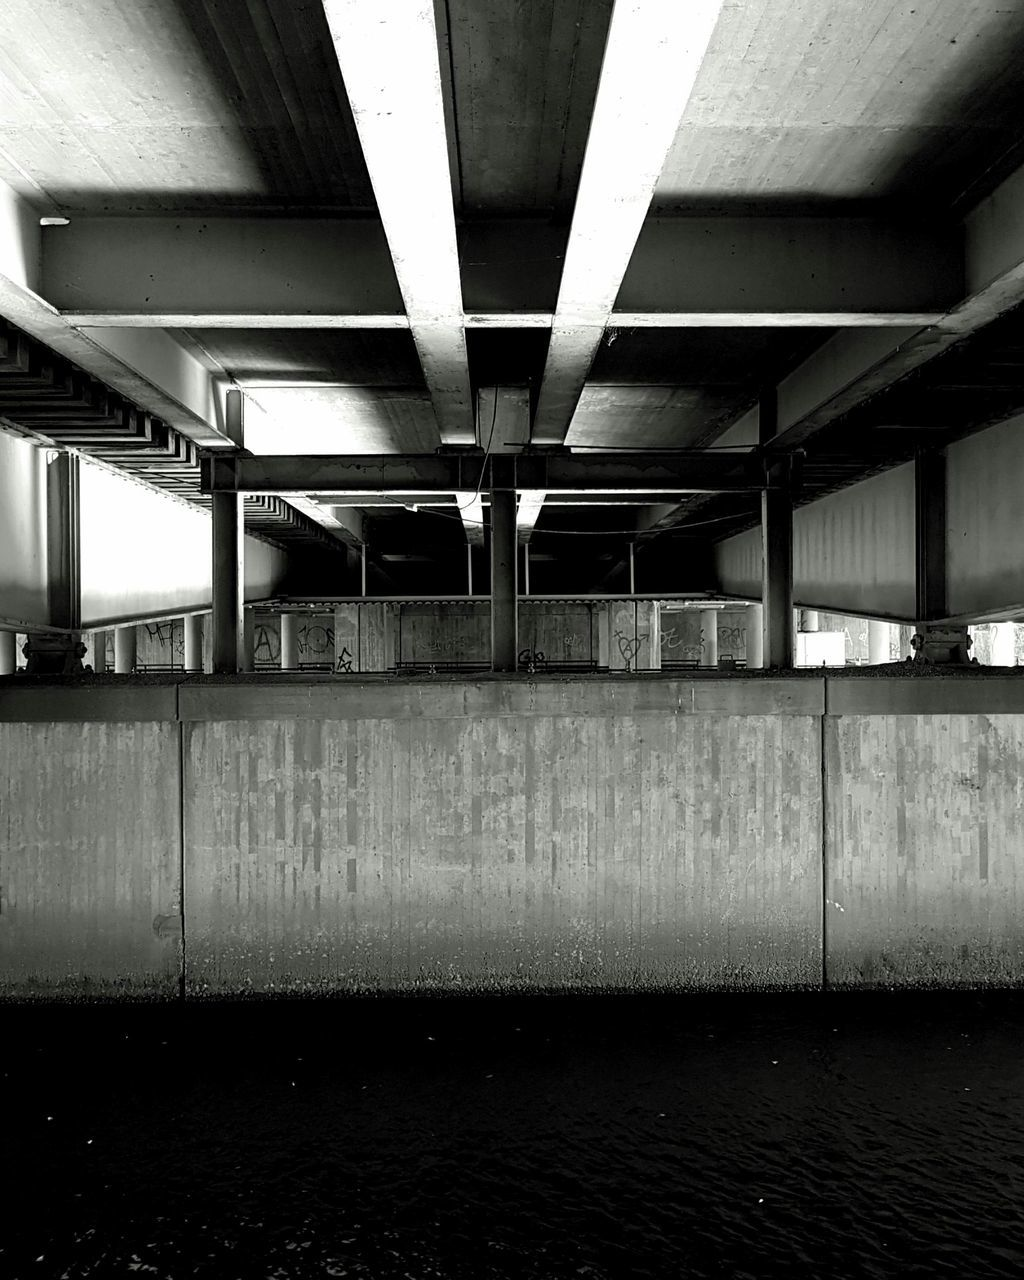 architecture, built structure, bridge - man made structure, connection, no people, indoors, transportation, underneath, day, water, under, parking garage